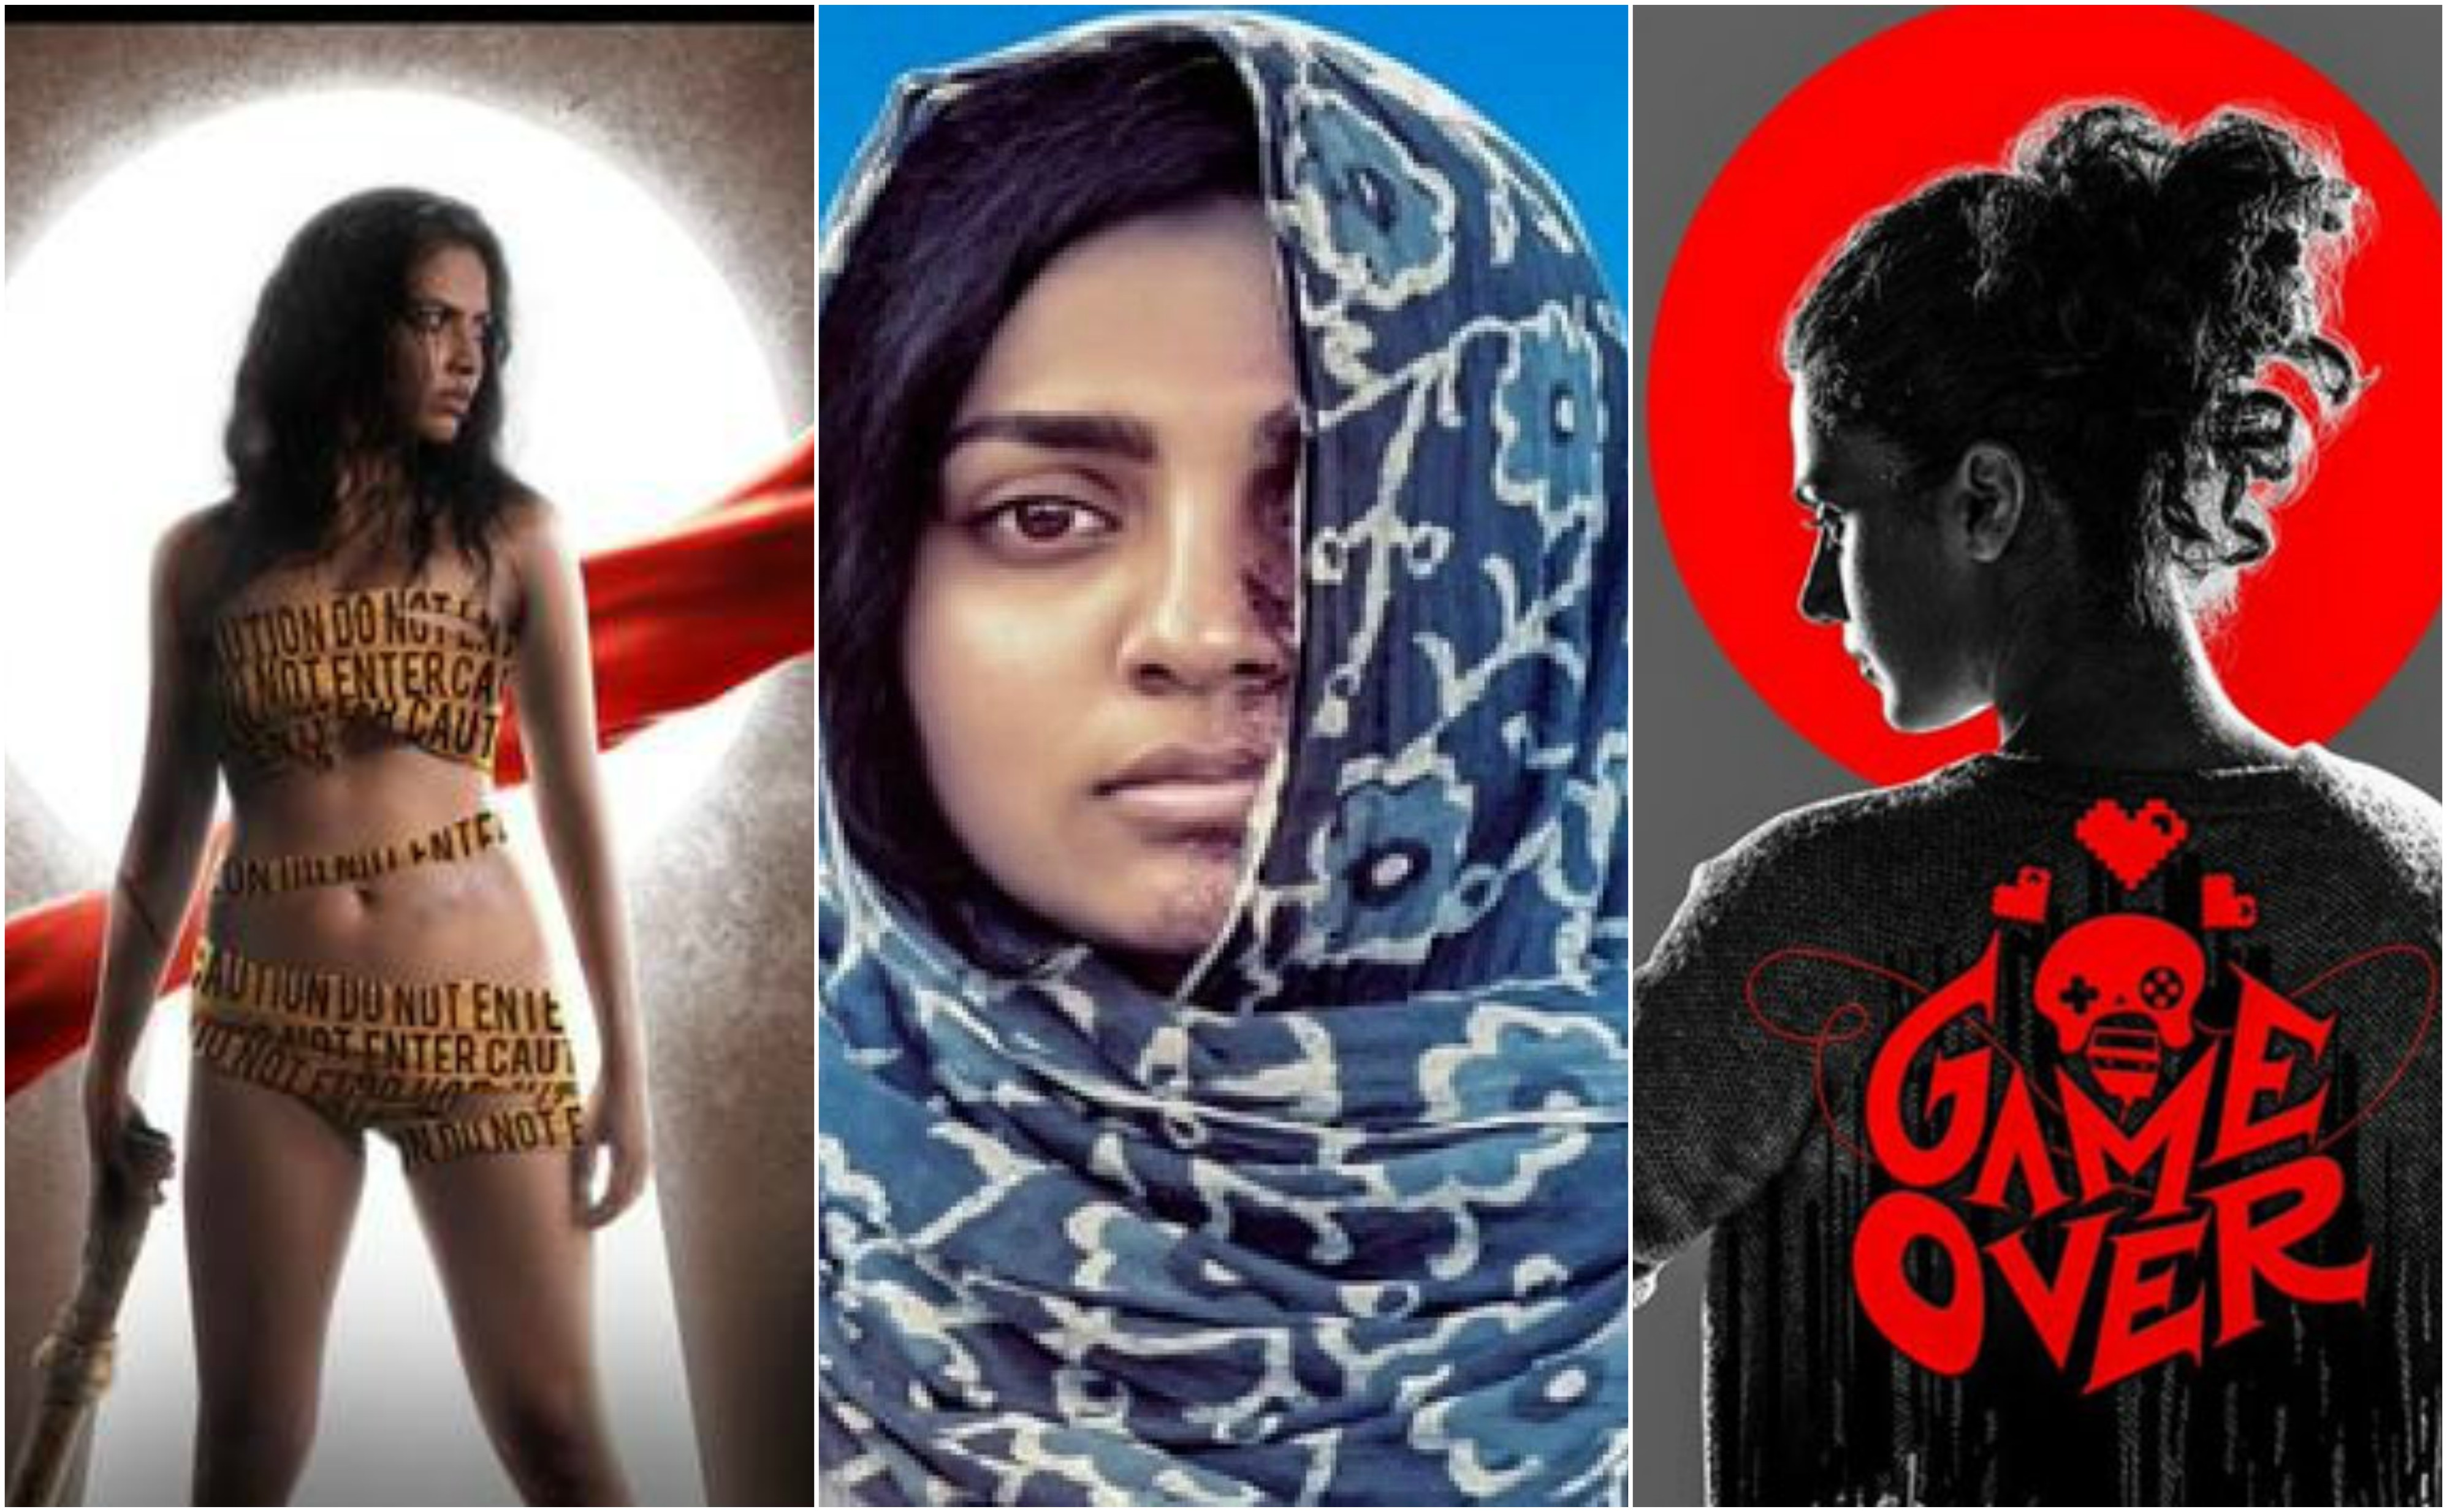 Women's Body, A Battleground— Through The Lens Of Aadai, Uyare And Gameover